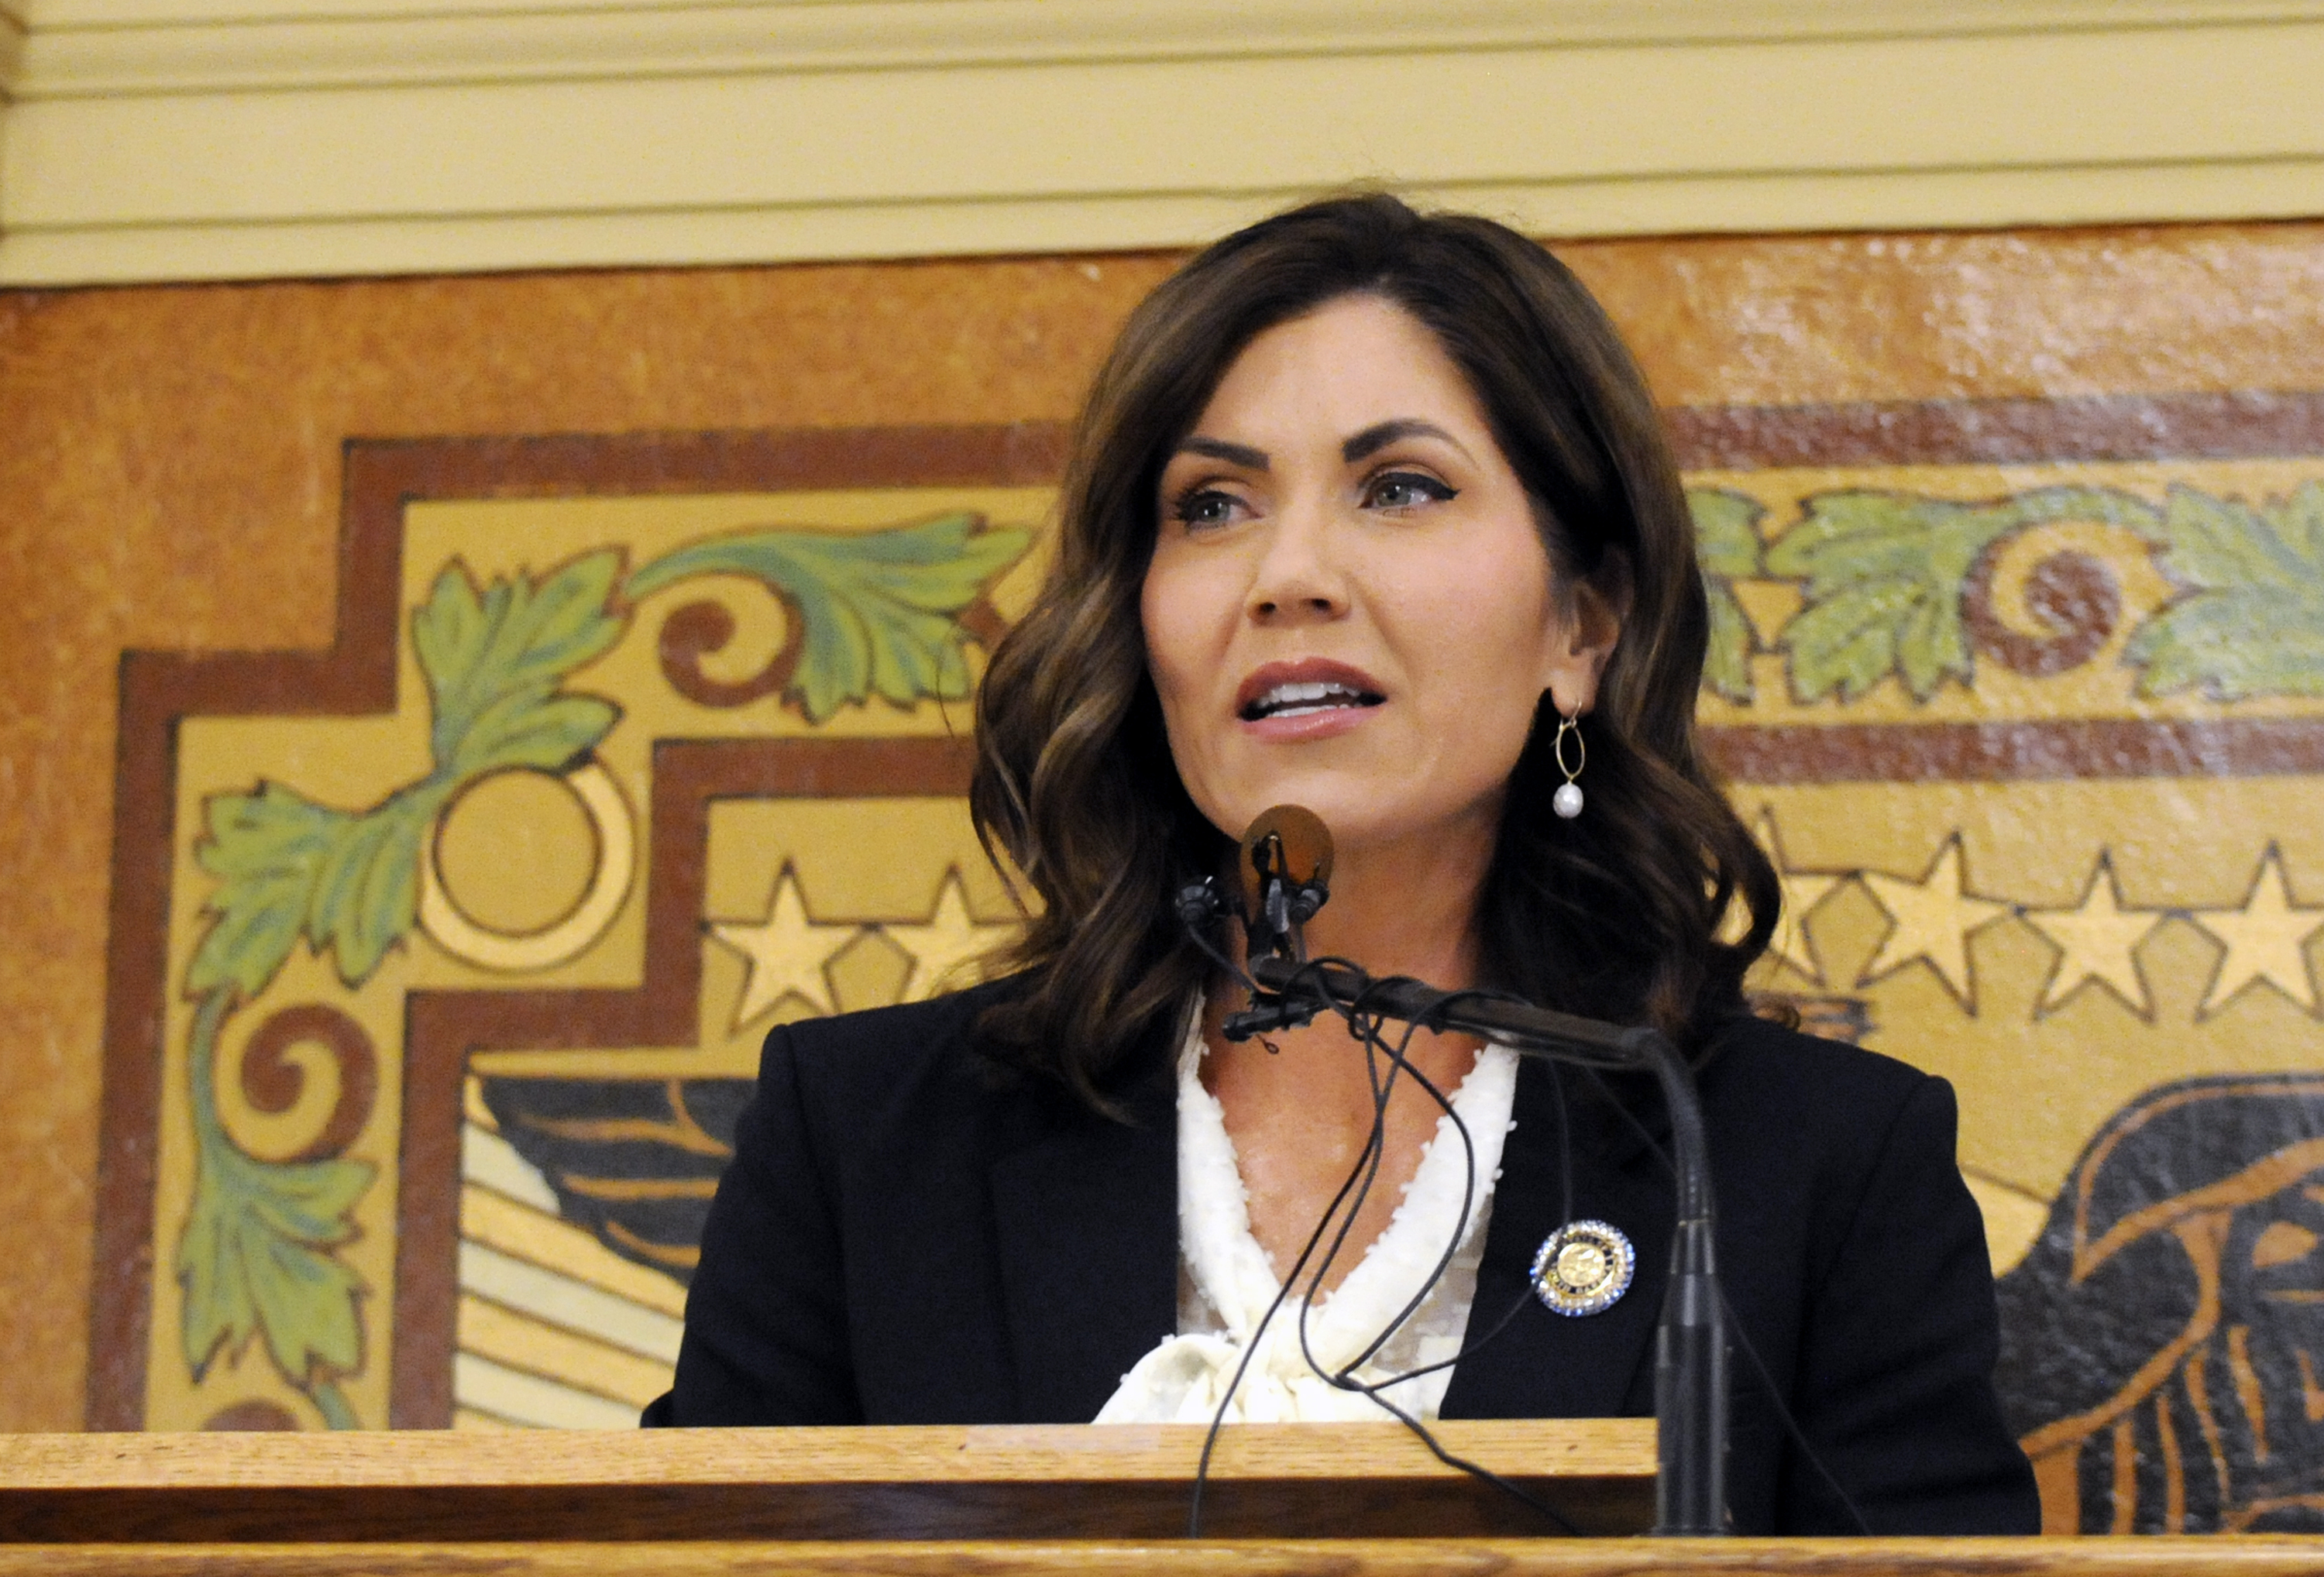 South Dakota Gov. Kristi Noem gives her first State of the State address in Pierre, S.D., on Jan. 8, 2019.